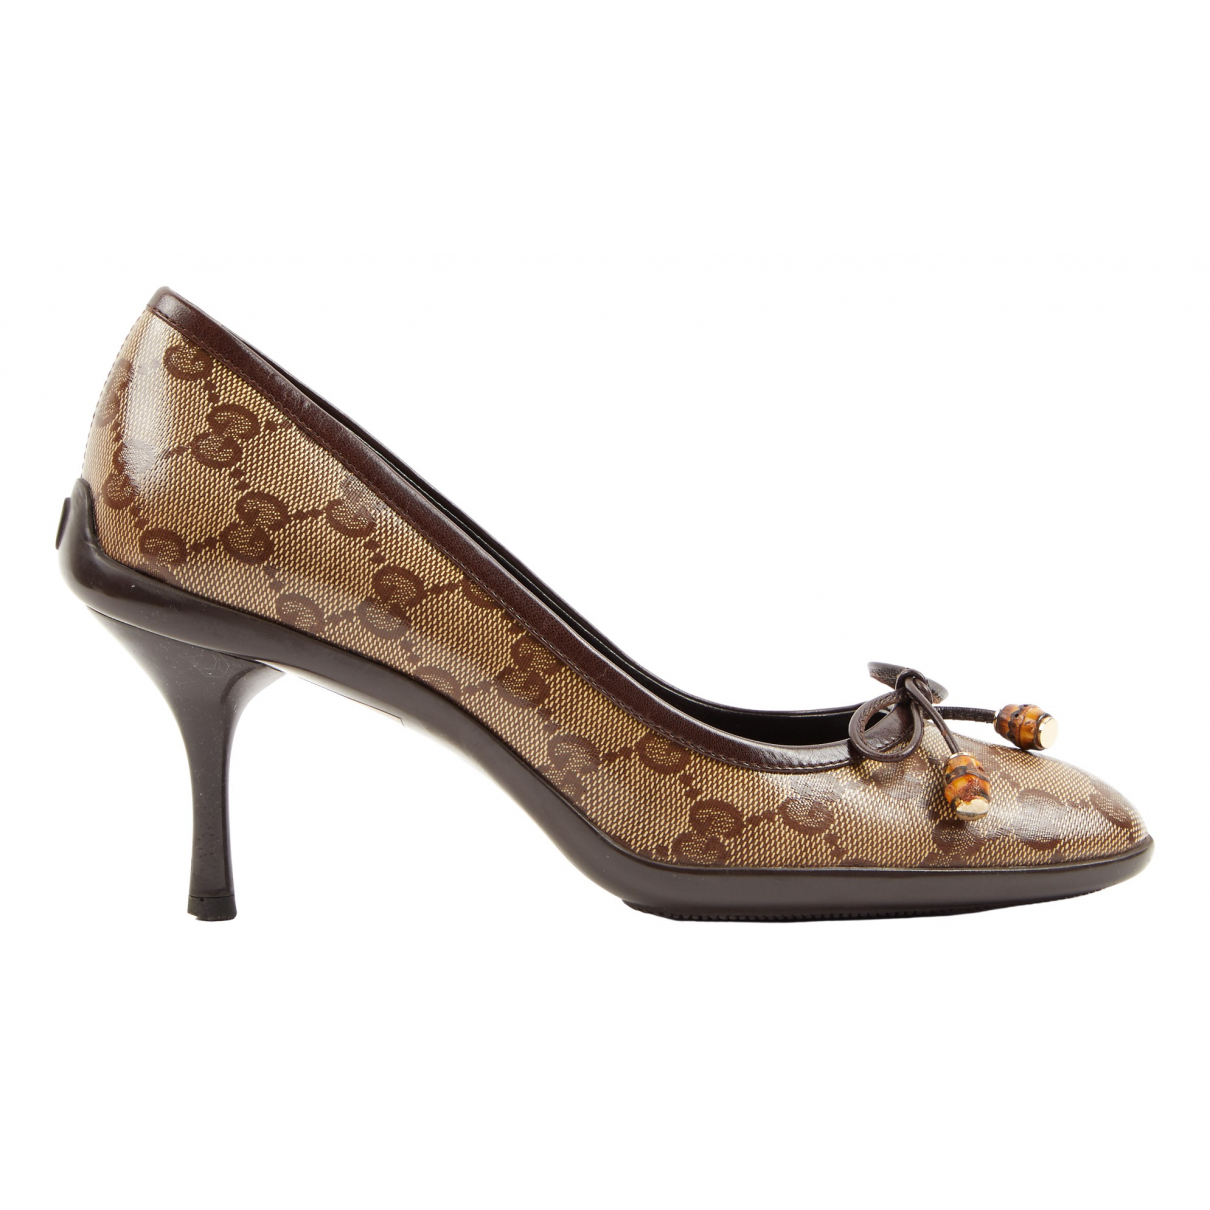 Gucci \N Pumps in  Braun Leinen